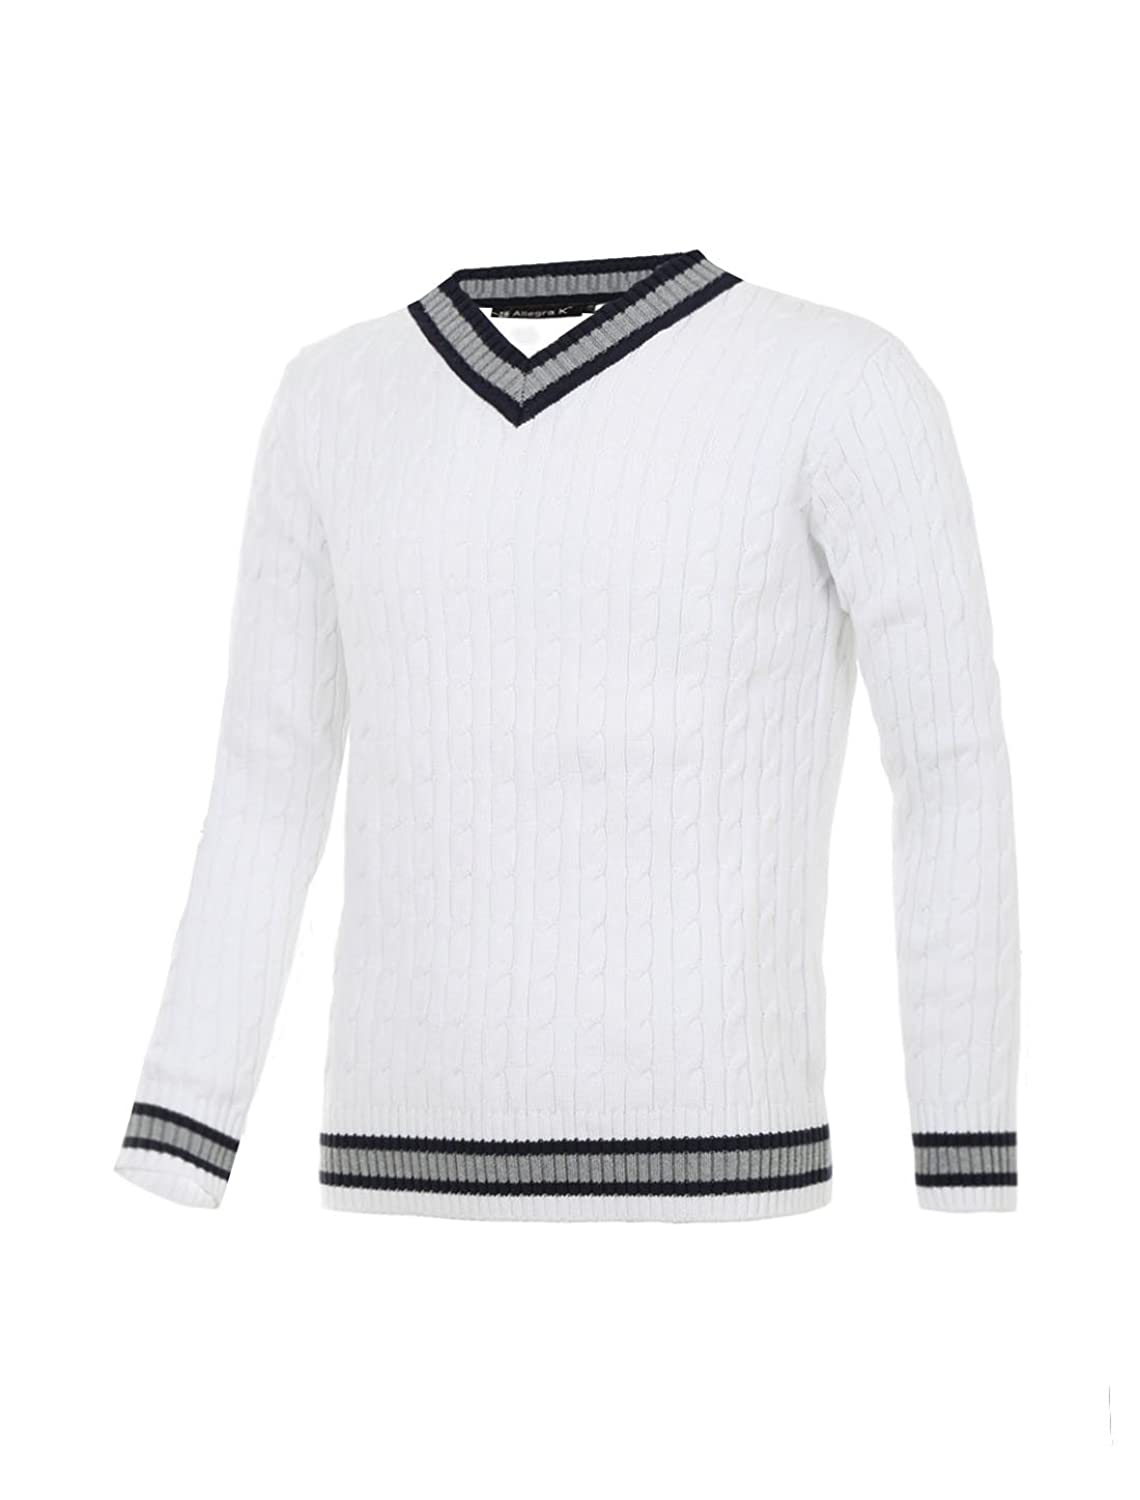 Men's Vintage Style Sweaters – 1920s to 1960s Allegra K Men V Neck Cable Pattern Ribbed Long Sleeves Pullover Knitted Sweater $30.50 AT vintagedancer.com